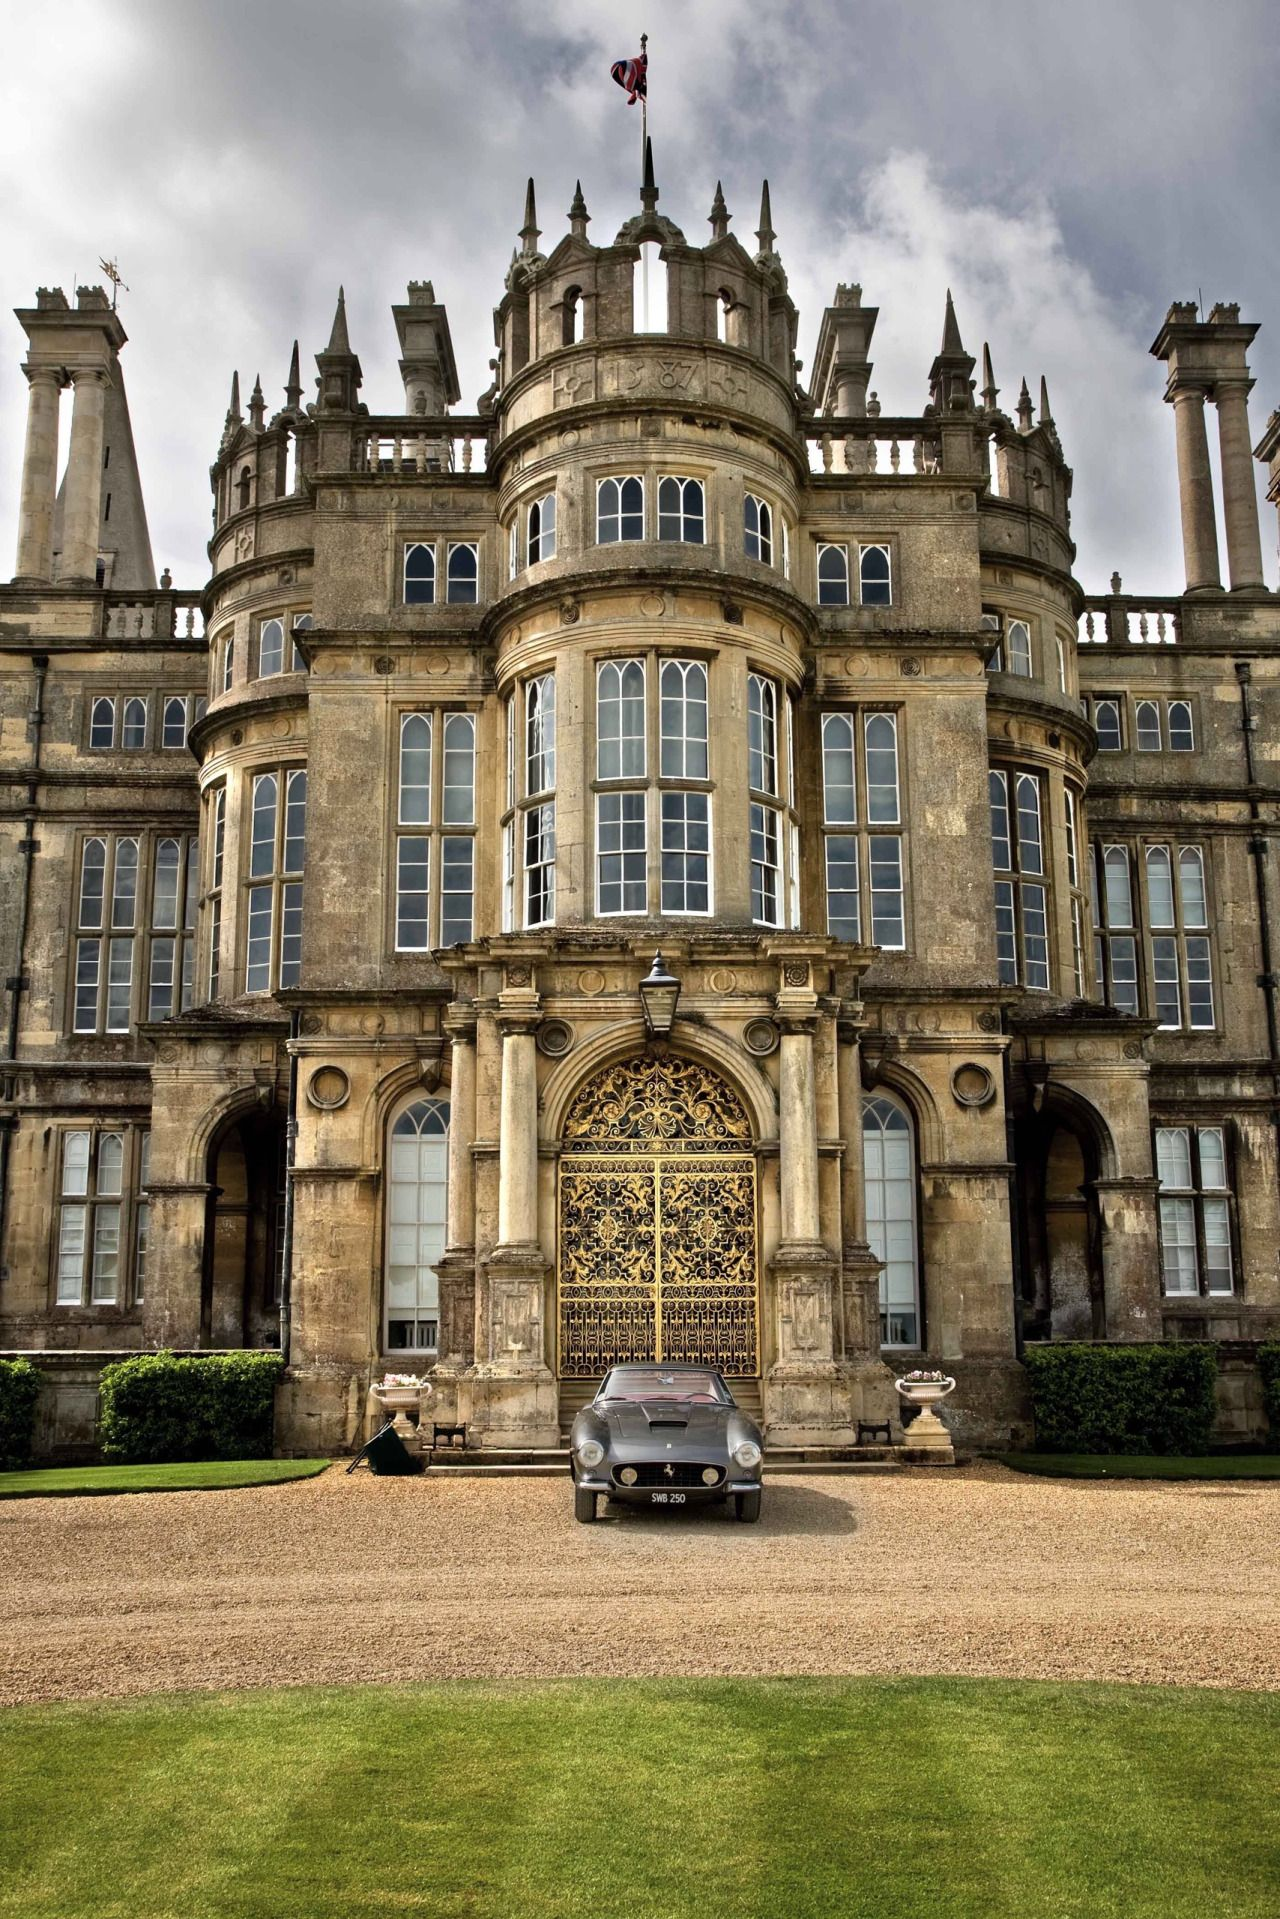 Belton House Carolean Architecture Is England S Only True